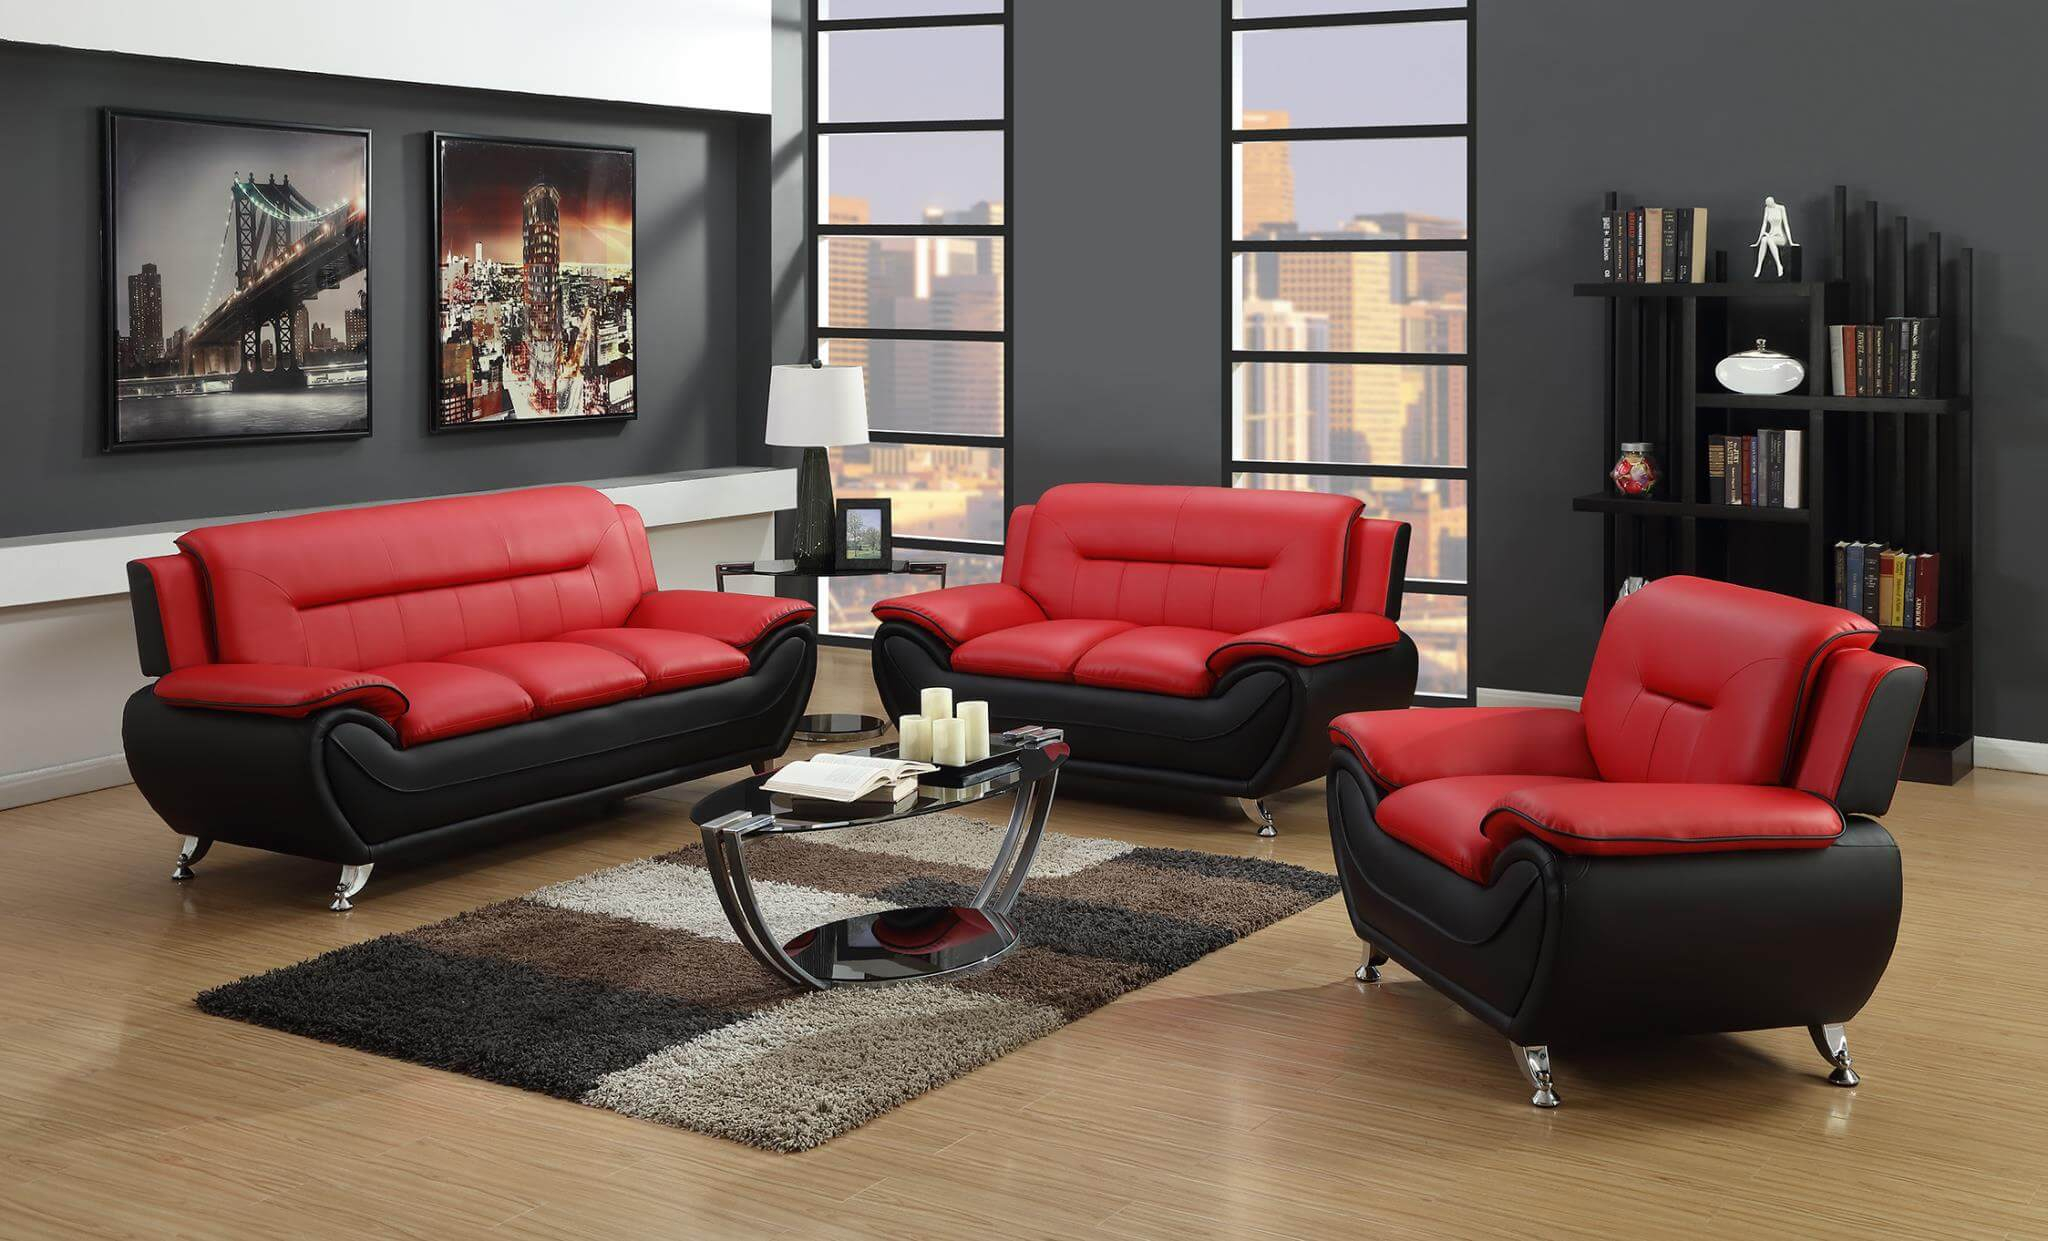 2705 Redblack Living Room Set intended for 10 Clever Tricks of How to Makeover Cheap Leather Living Room Sets